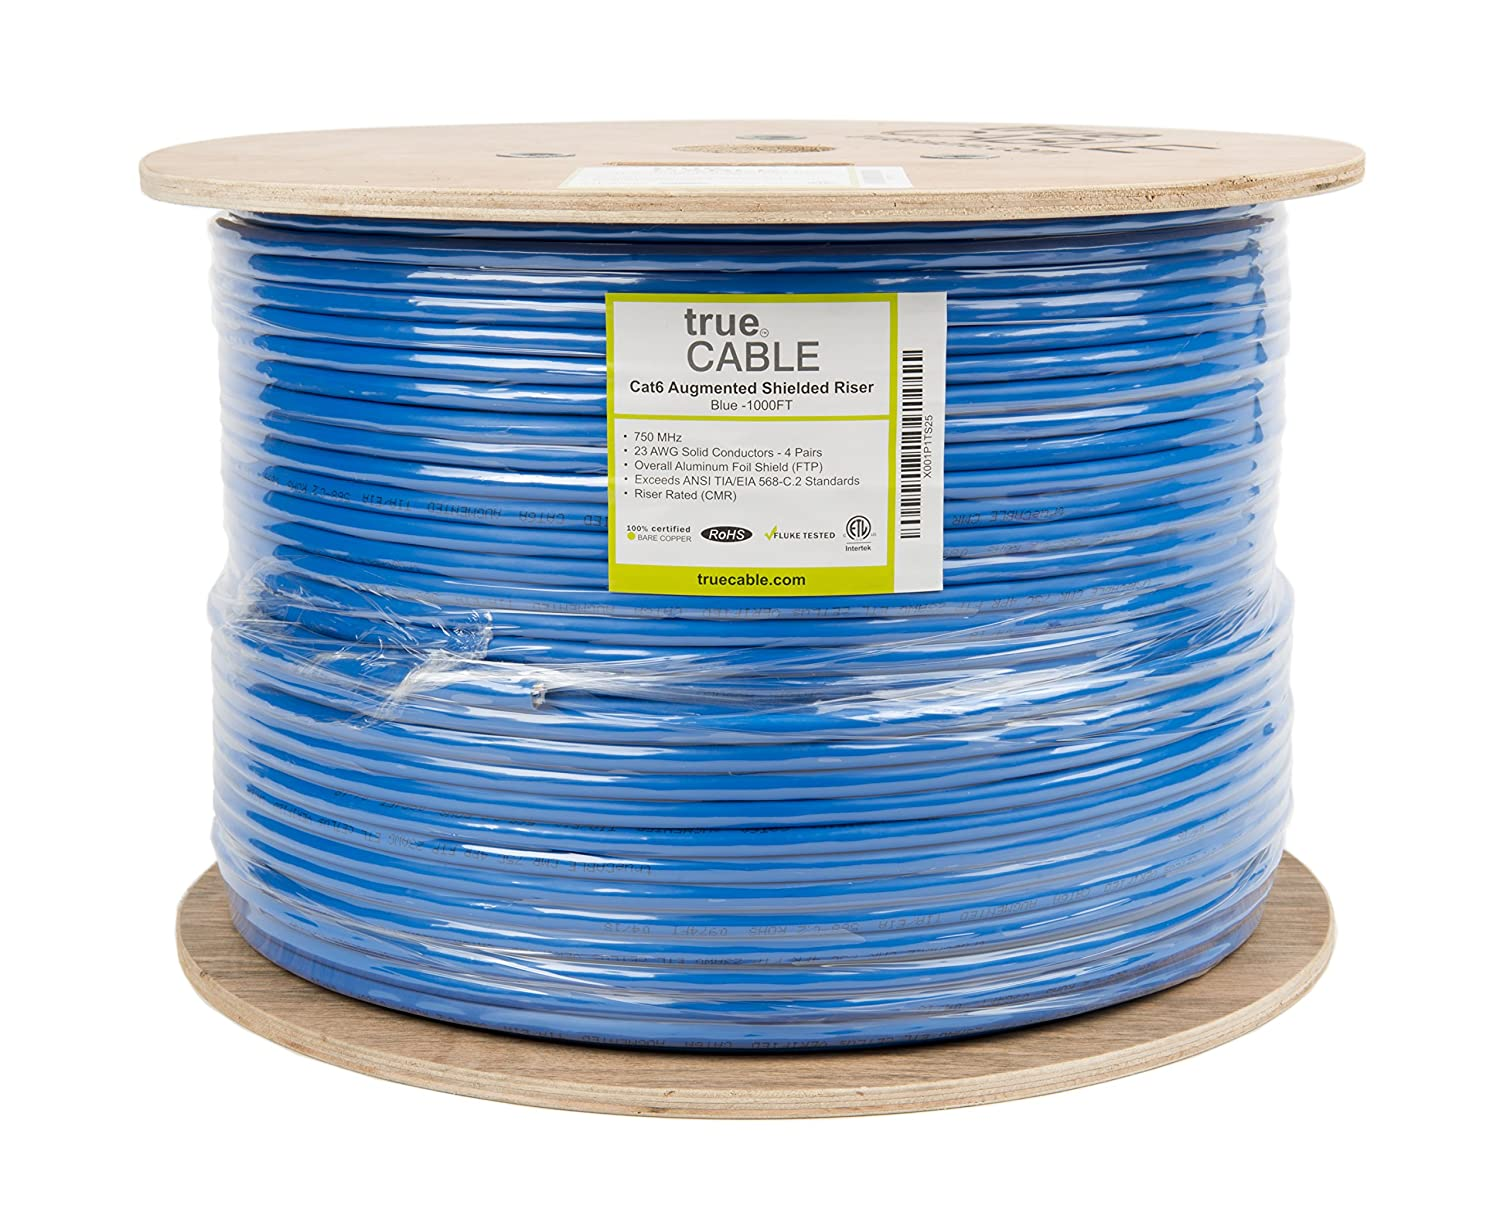 Amazon.com: Cat6A Shielded Riser (CMR), 1000ft, Blue, 23AWG Solid ...